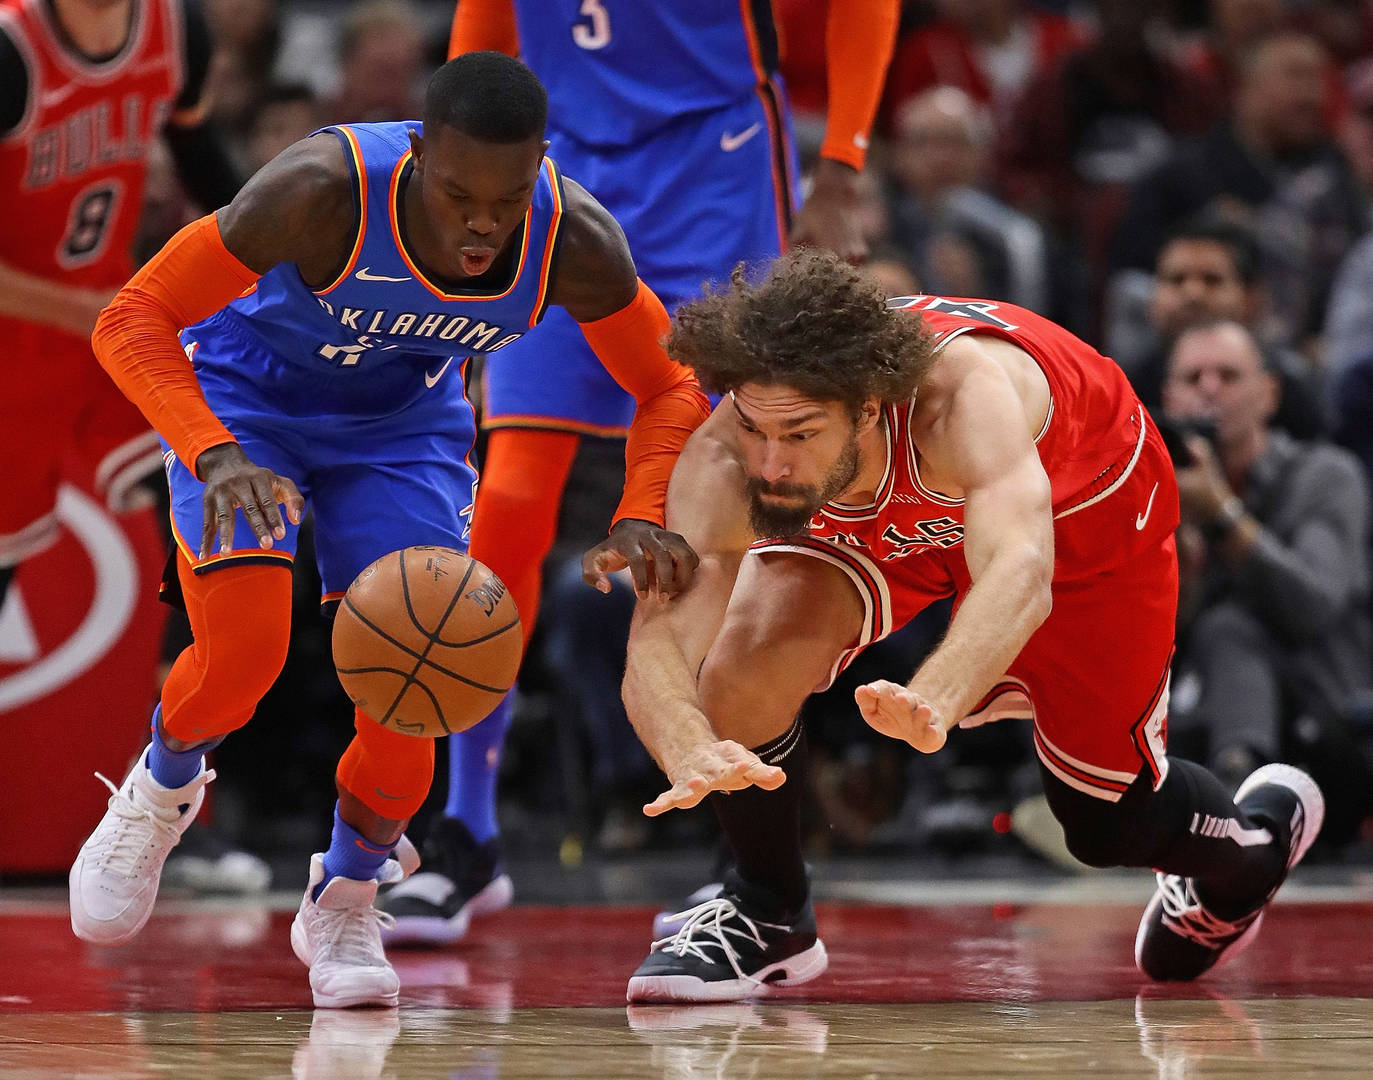 GettyImages 1079309910 - Russell Westbrook, Kris Dunn, Robin Lopez, & More Involved In Scuffle (Photos)